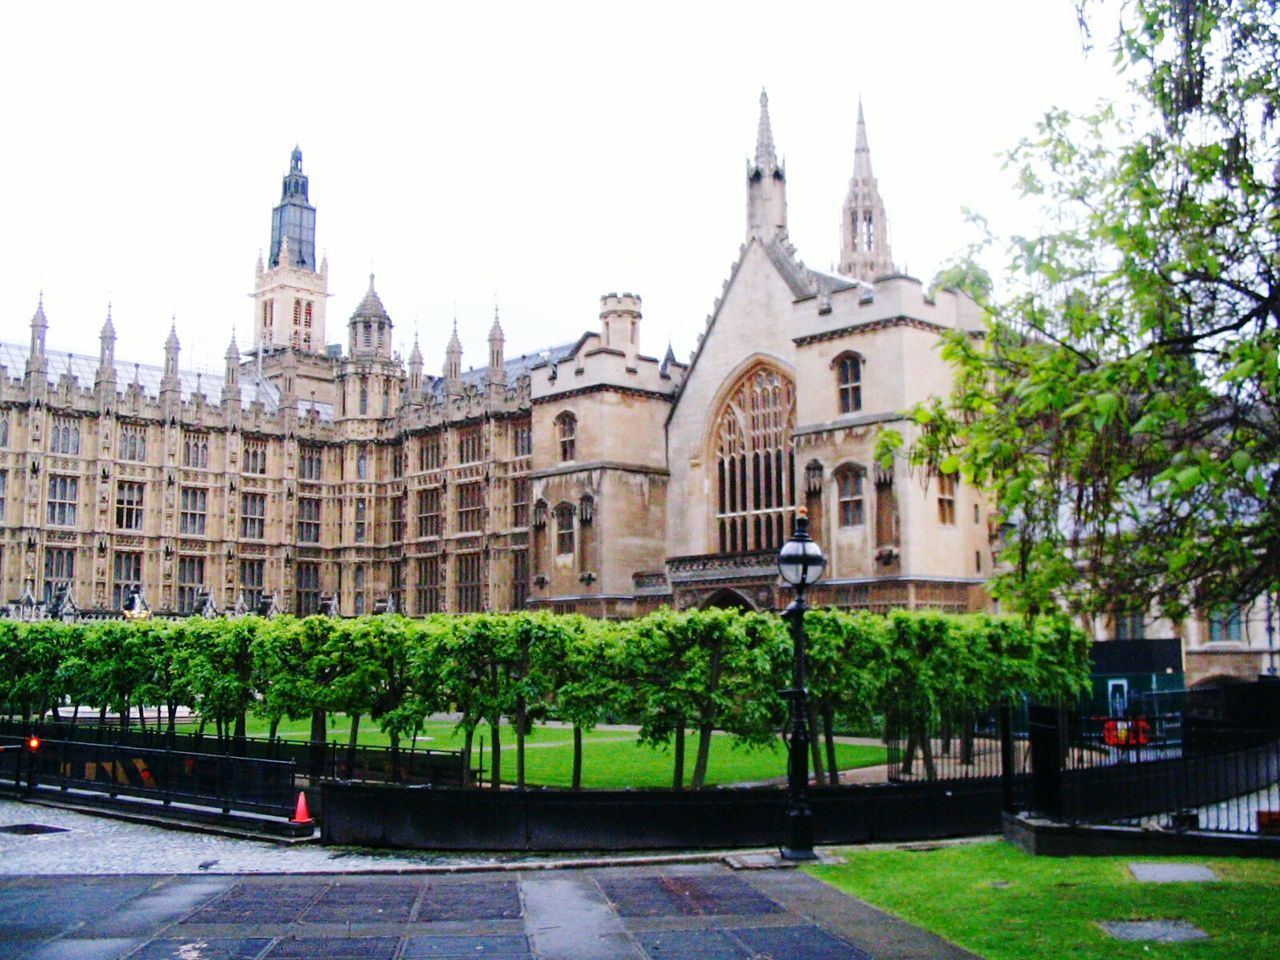 Architecture Building Exterior Travel Destinations City Built Structure Clear Sky Outdoors No People Day Sky London England🇬🇧 England LONDON❤ England 🌹 England, UK England 🇬🇧 England London Westminster Westminster House Of Parliament